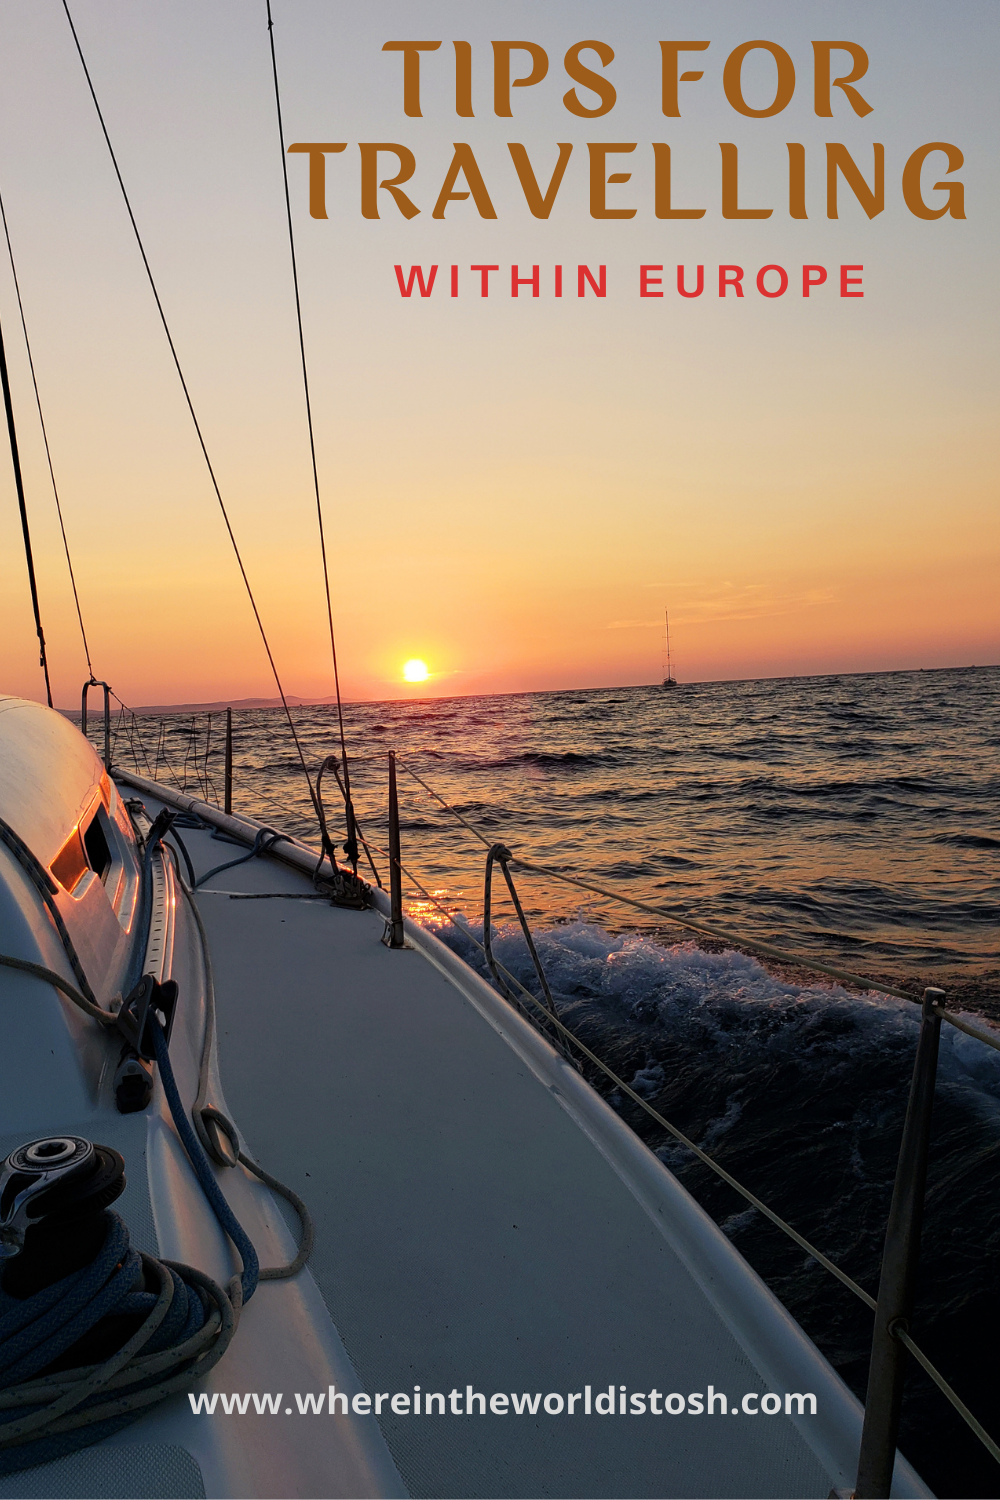 Tips For Travelling Within Europe